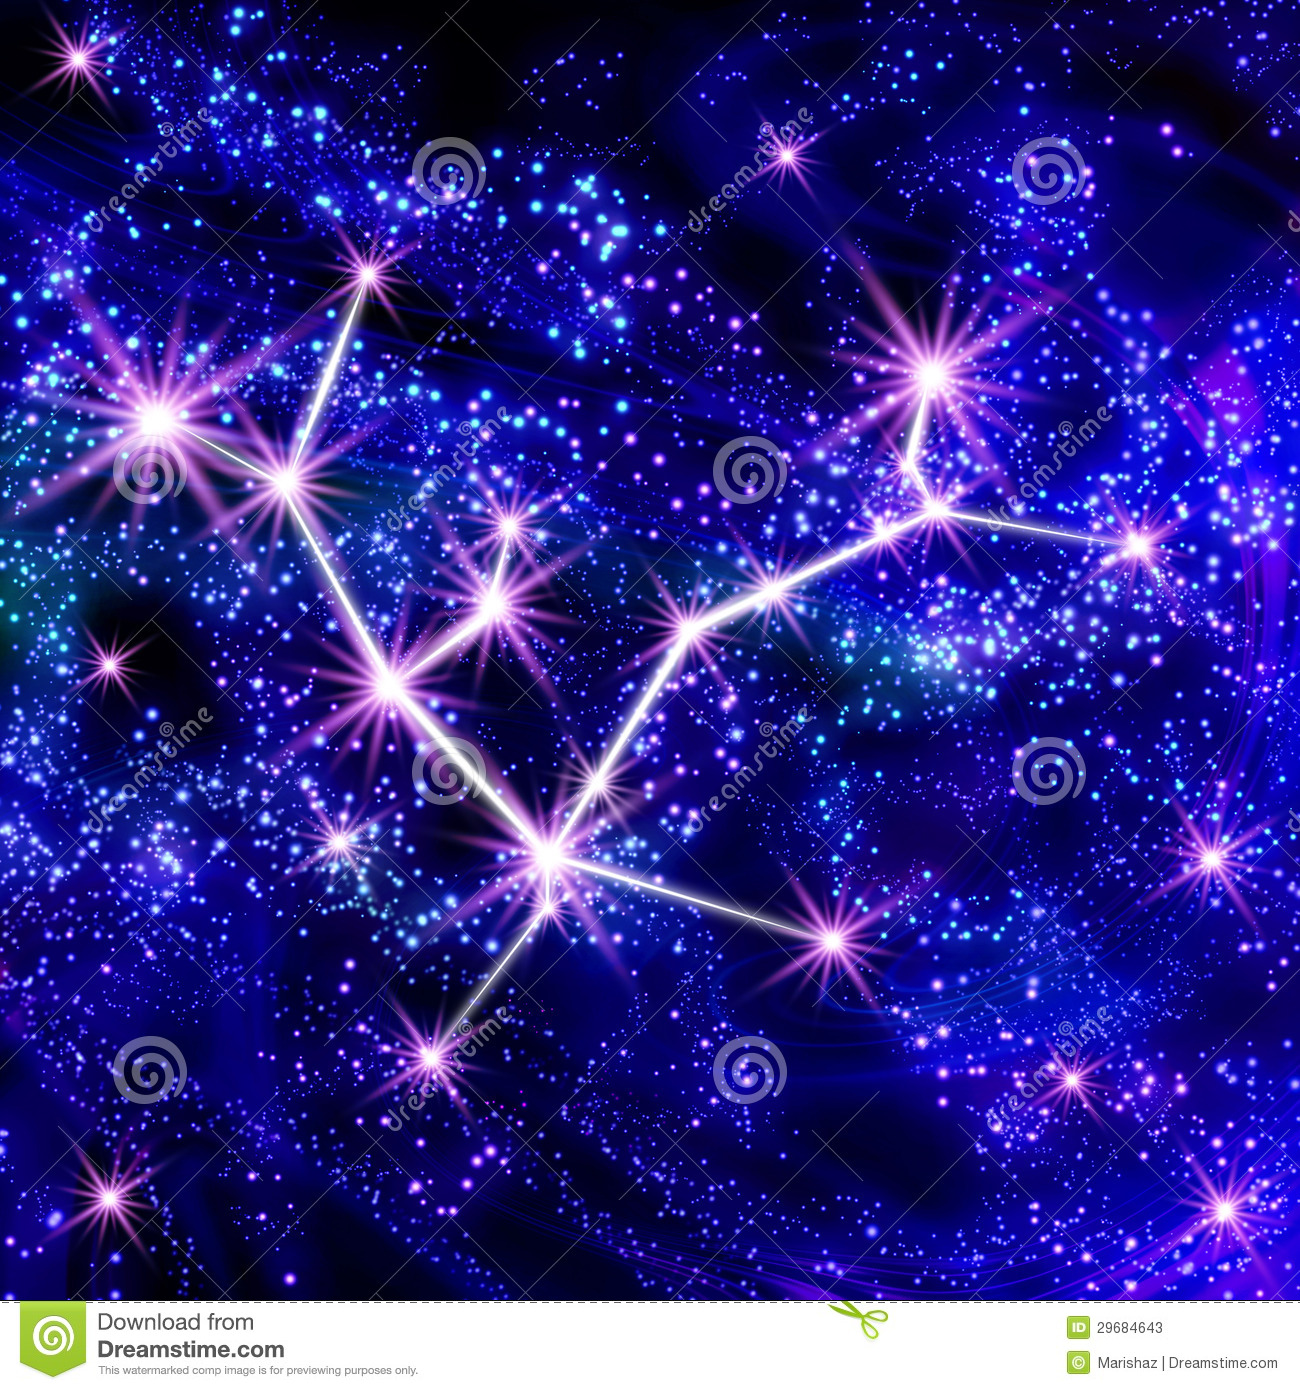 Andromeda Constellation Stock Photos - Image: 29684643